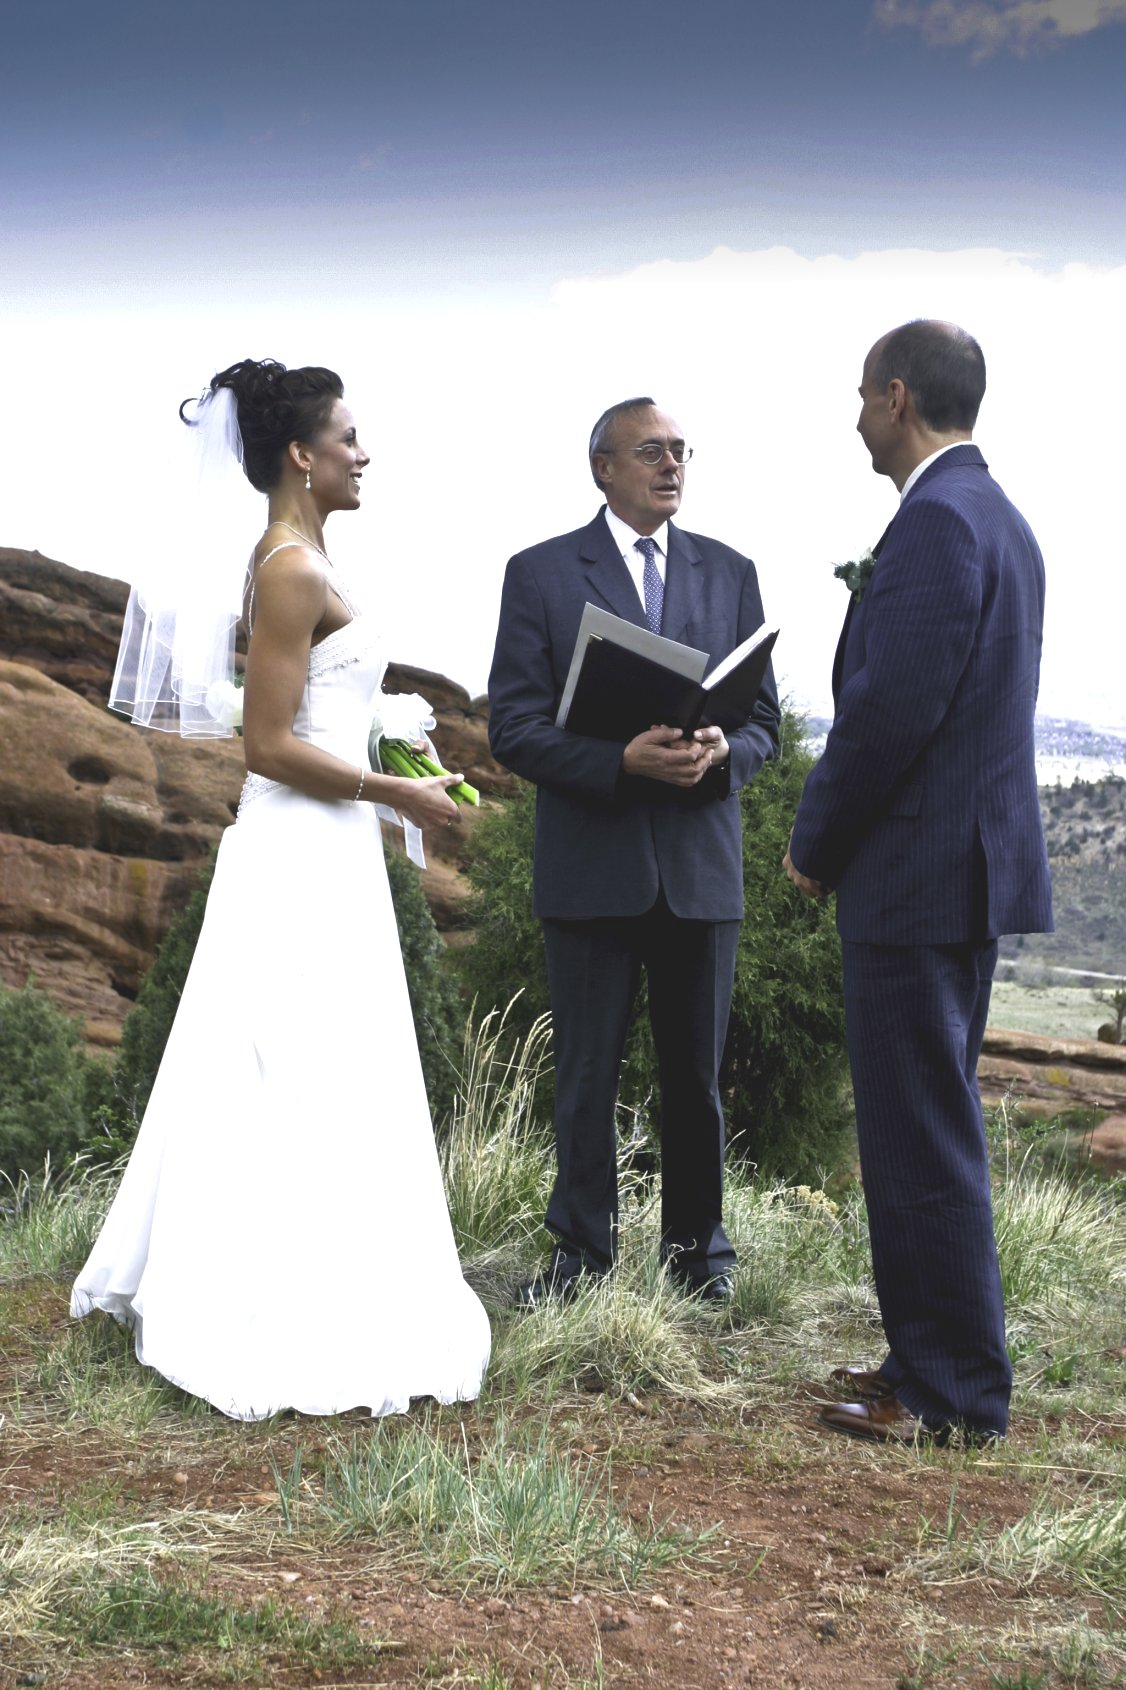 Colorado wedding ceremonies chris karen mohr officiants wedding officiants for your simple traditional or romantic wedding junglespirit Image collections